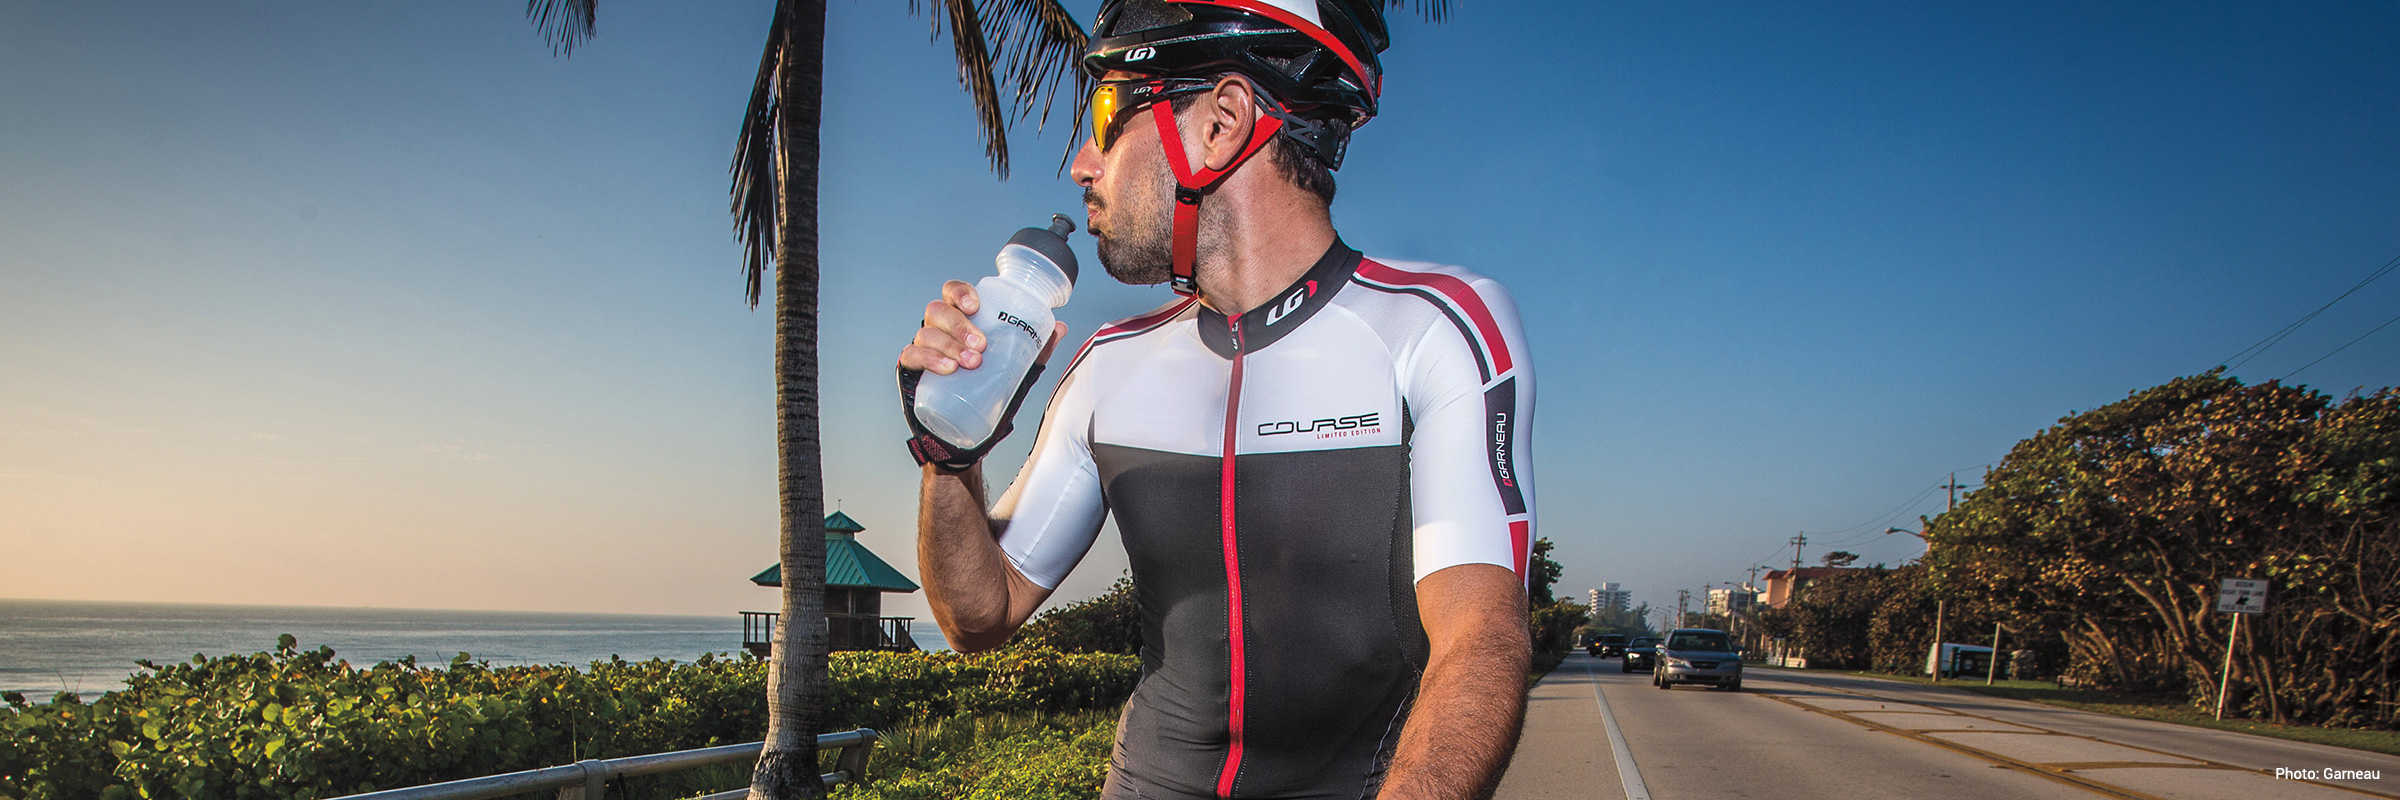 Dakine, Norrona, Nuun, Osprey, Tacx, Zefal. How to Know When to Use a Hydration Pack or Water Bottle for Cycling